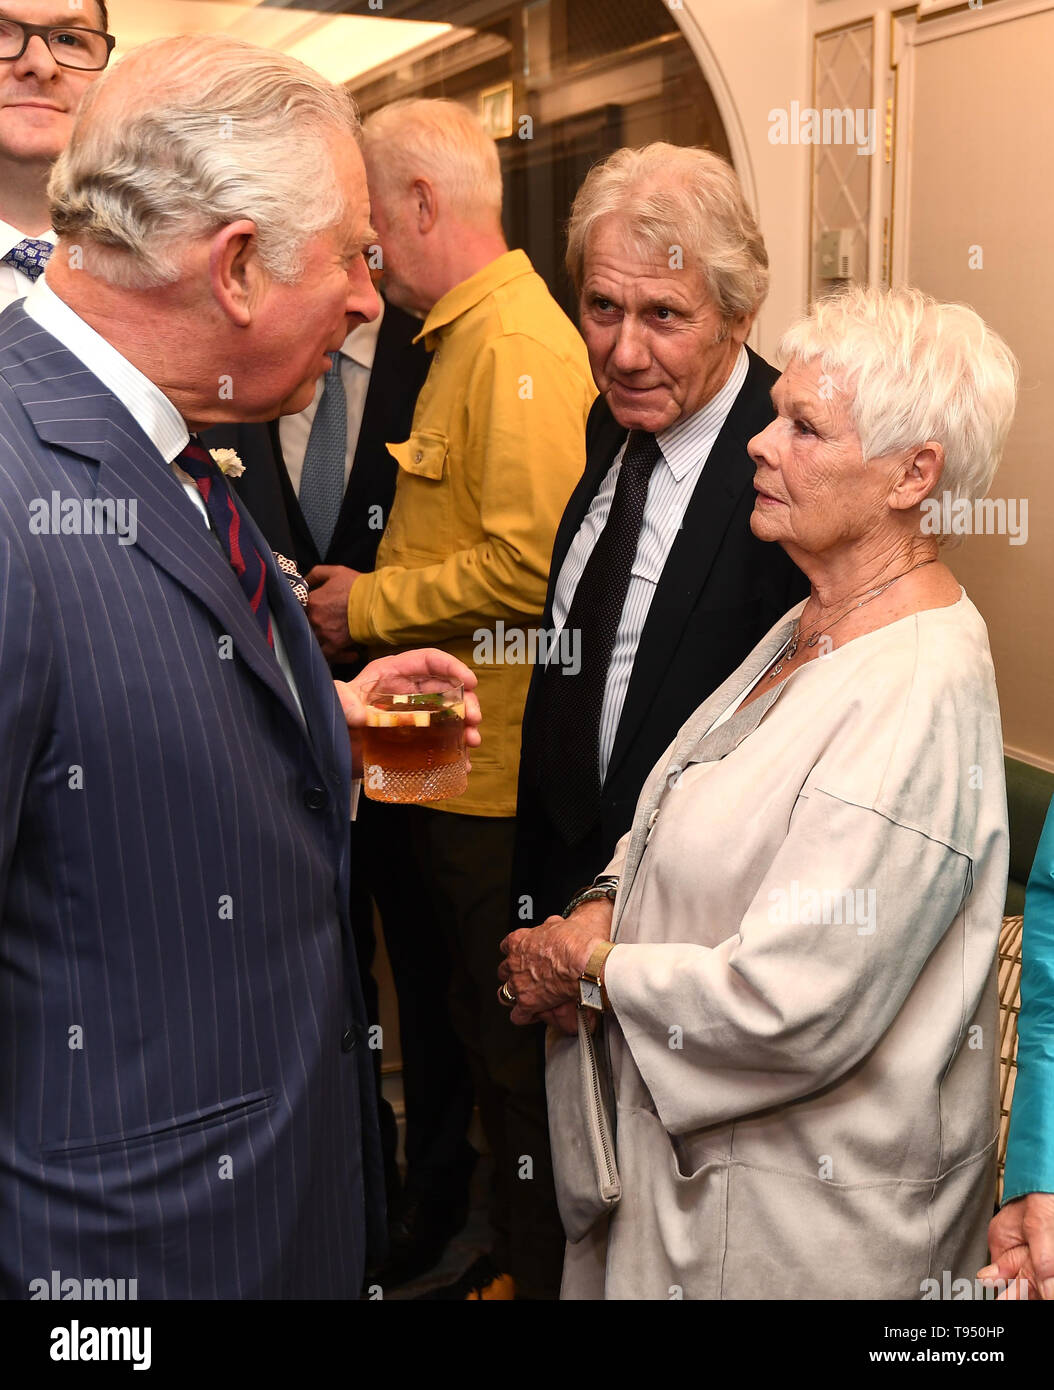 The Prince of Wales talks with Dame Judi Dench and her partner David Mills, at the annual Fortnum & Mason Food and Drink Awards at Fortnum & Mason, central London. - Stock Image